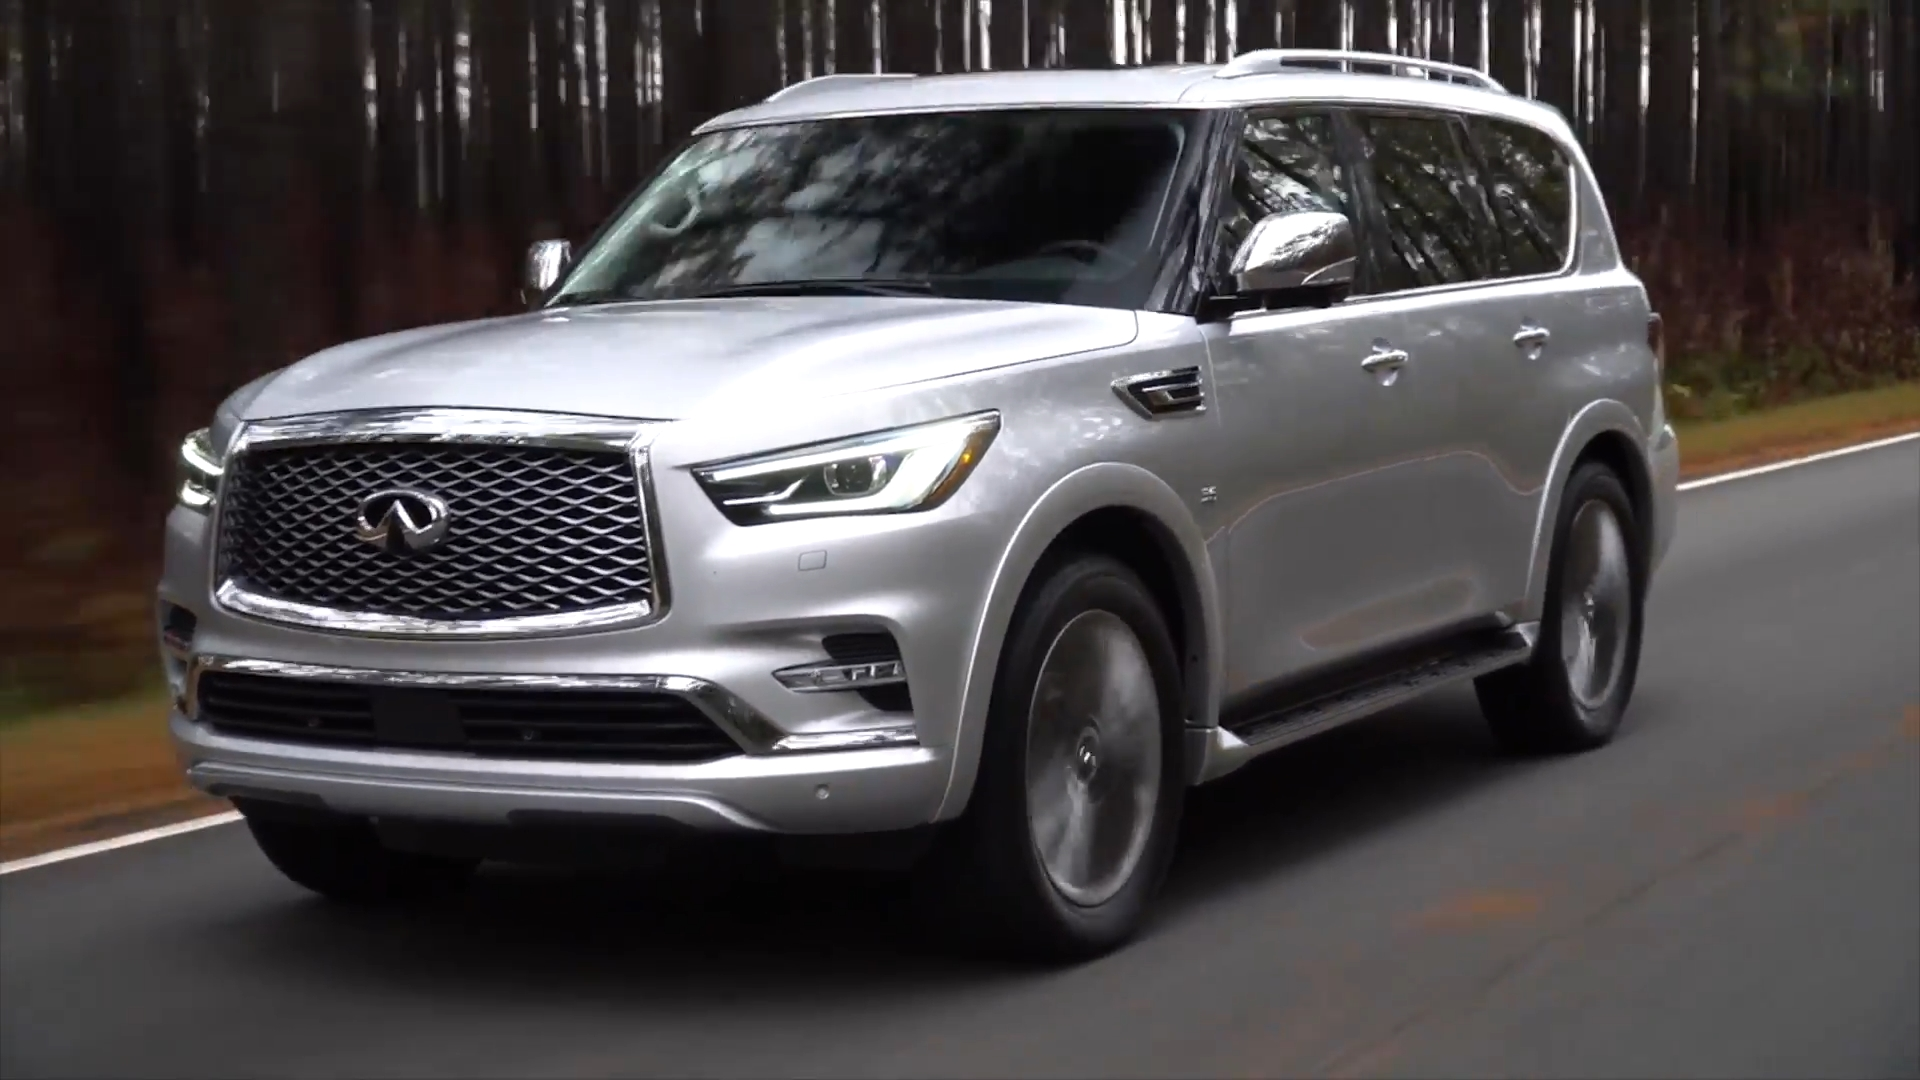 2018 INFINITI QX80 Driving Video in Silver